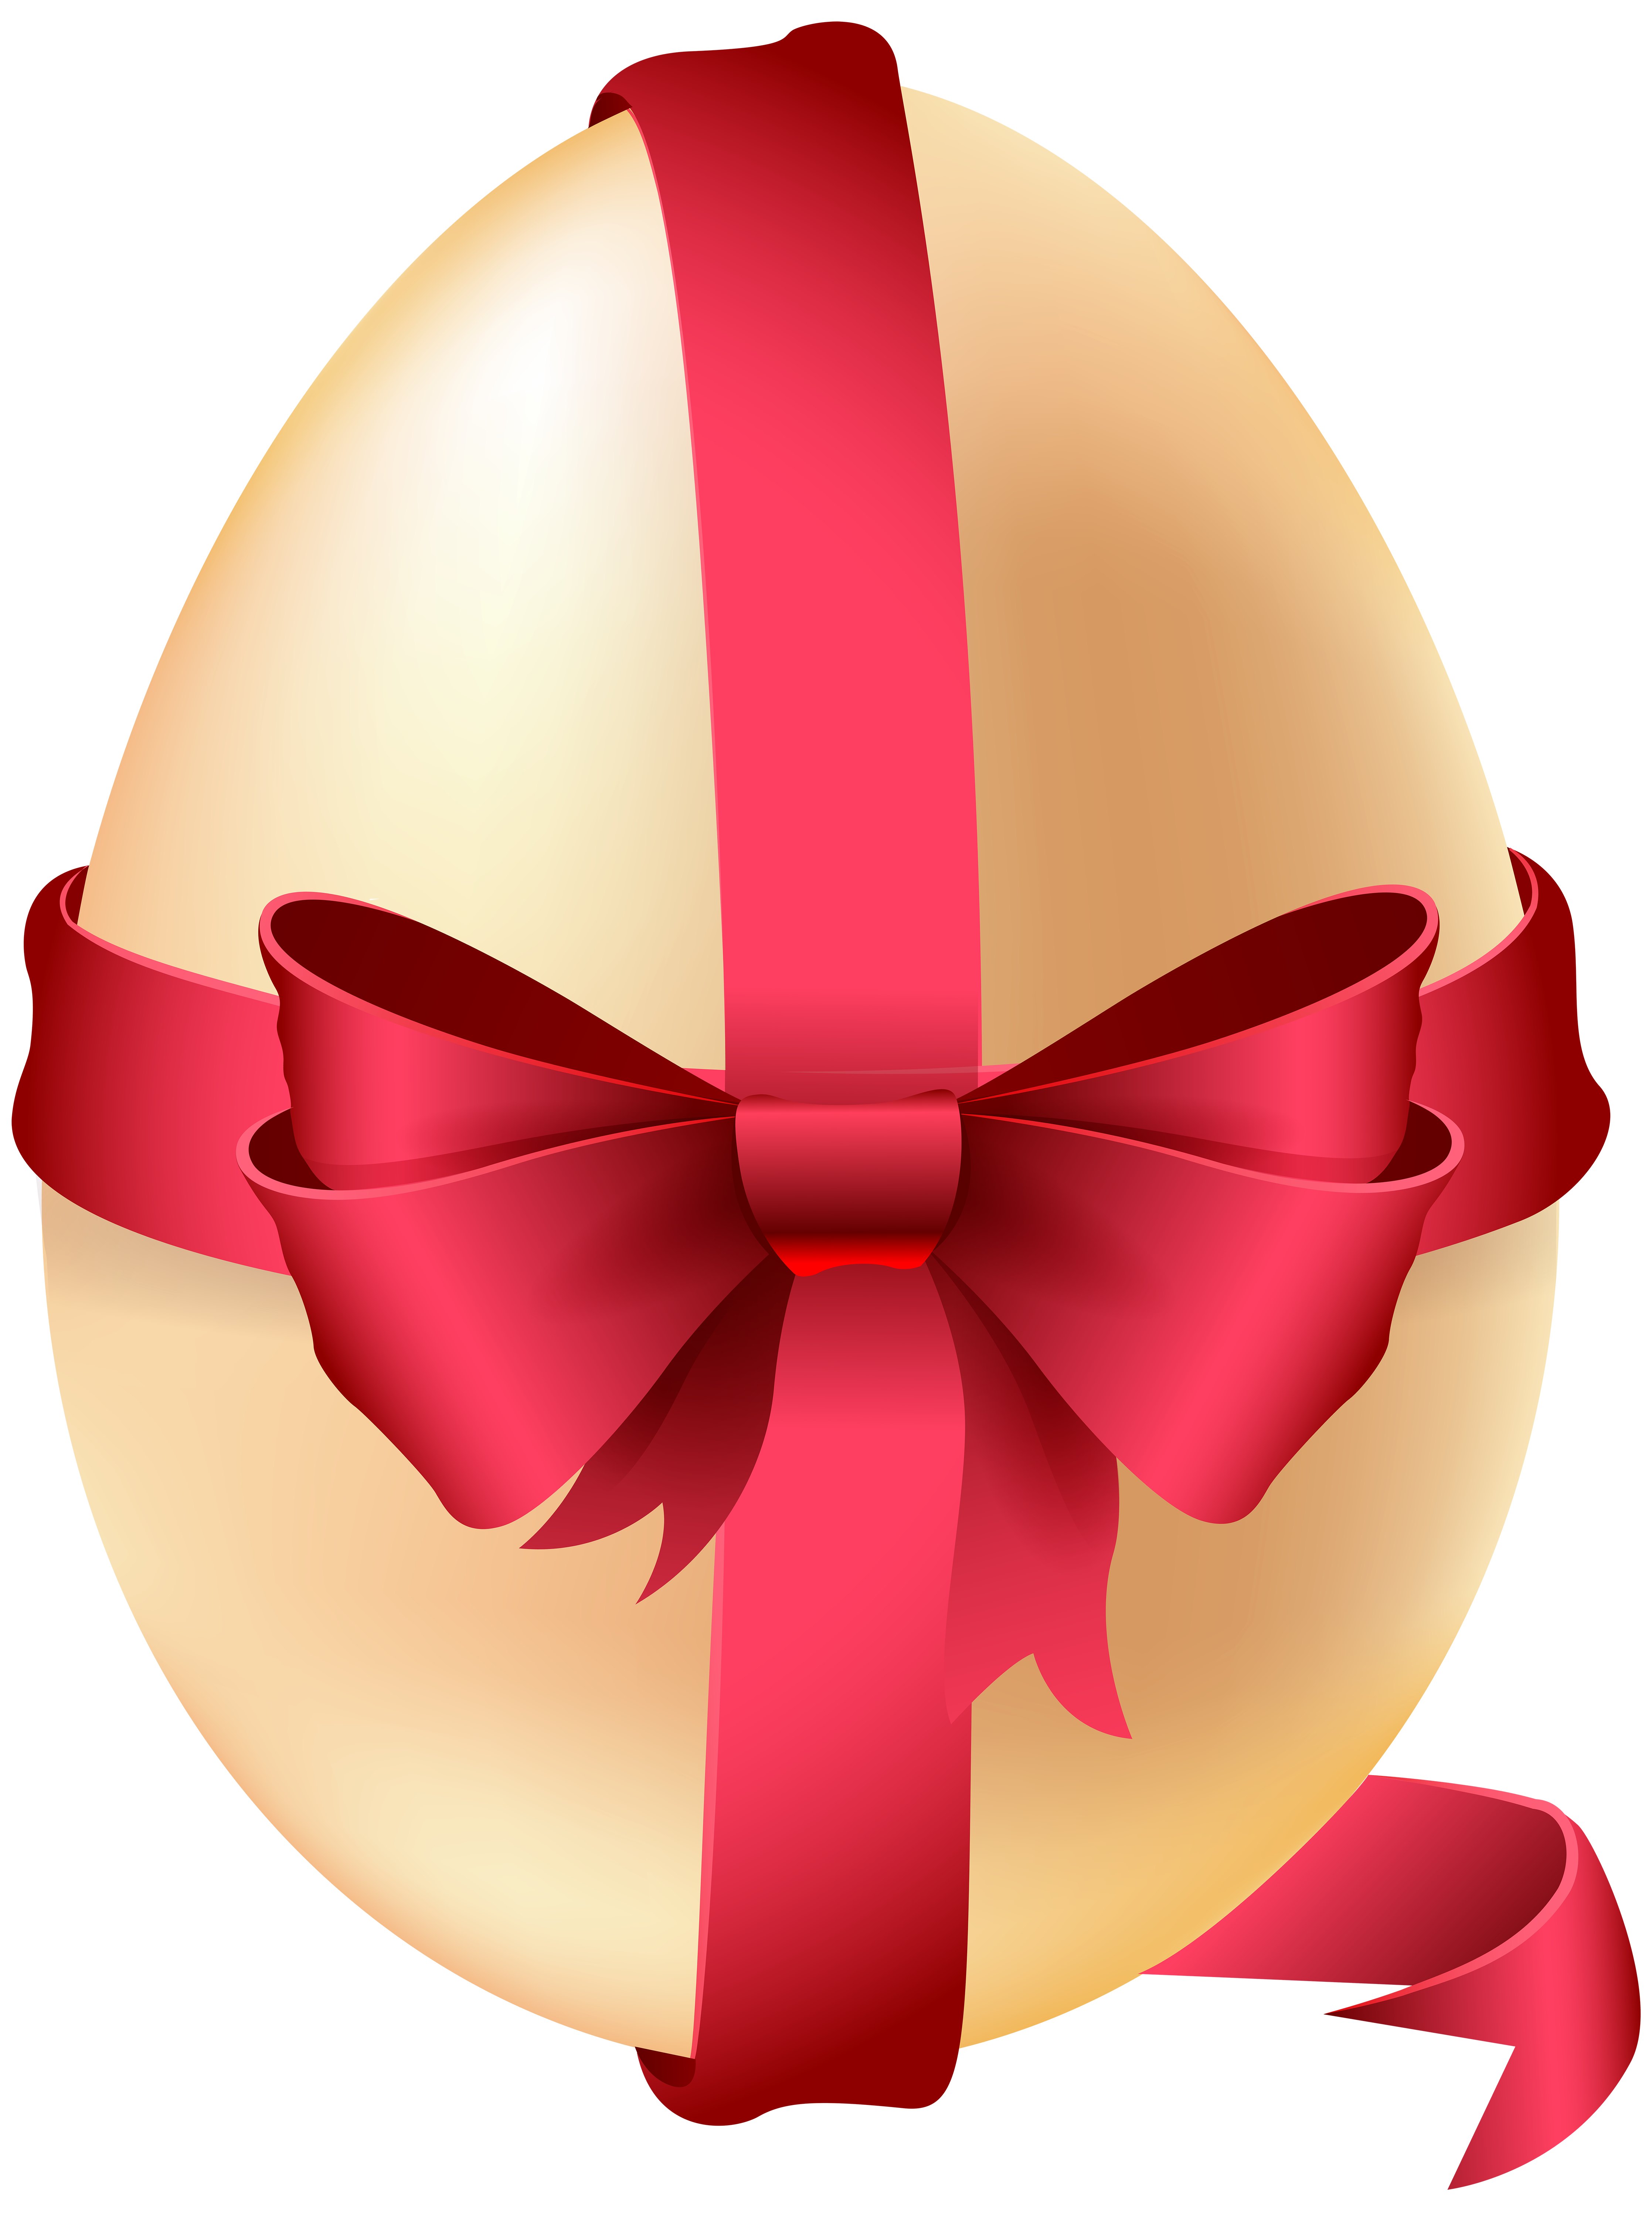 Egg with red bow. Bows clipart easter